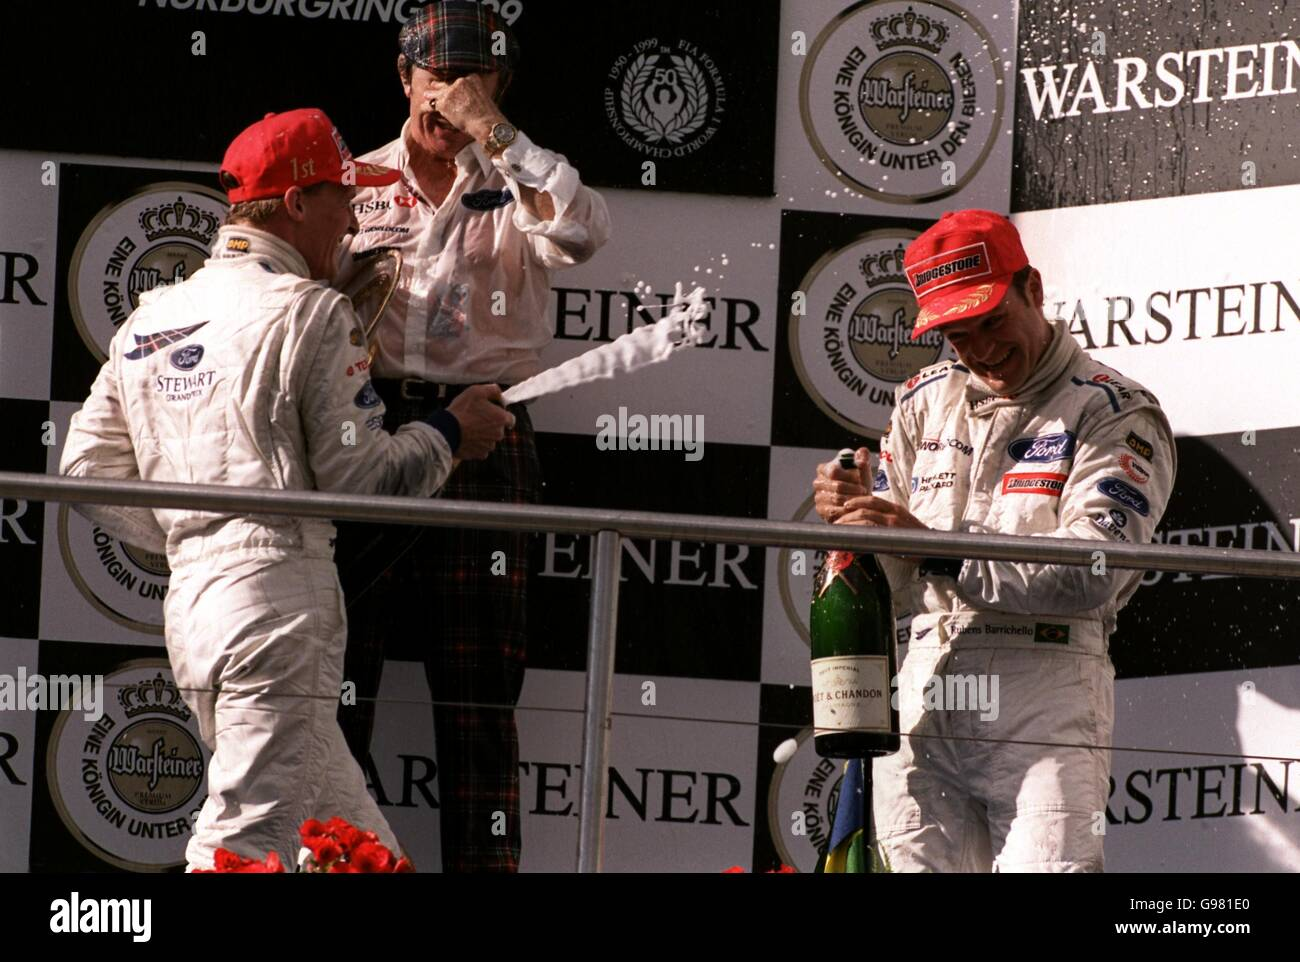 Formula One Motor Racing - European Grand Prix - Race Day - Stock Image